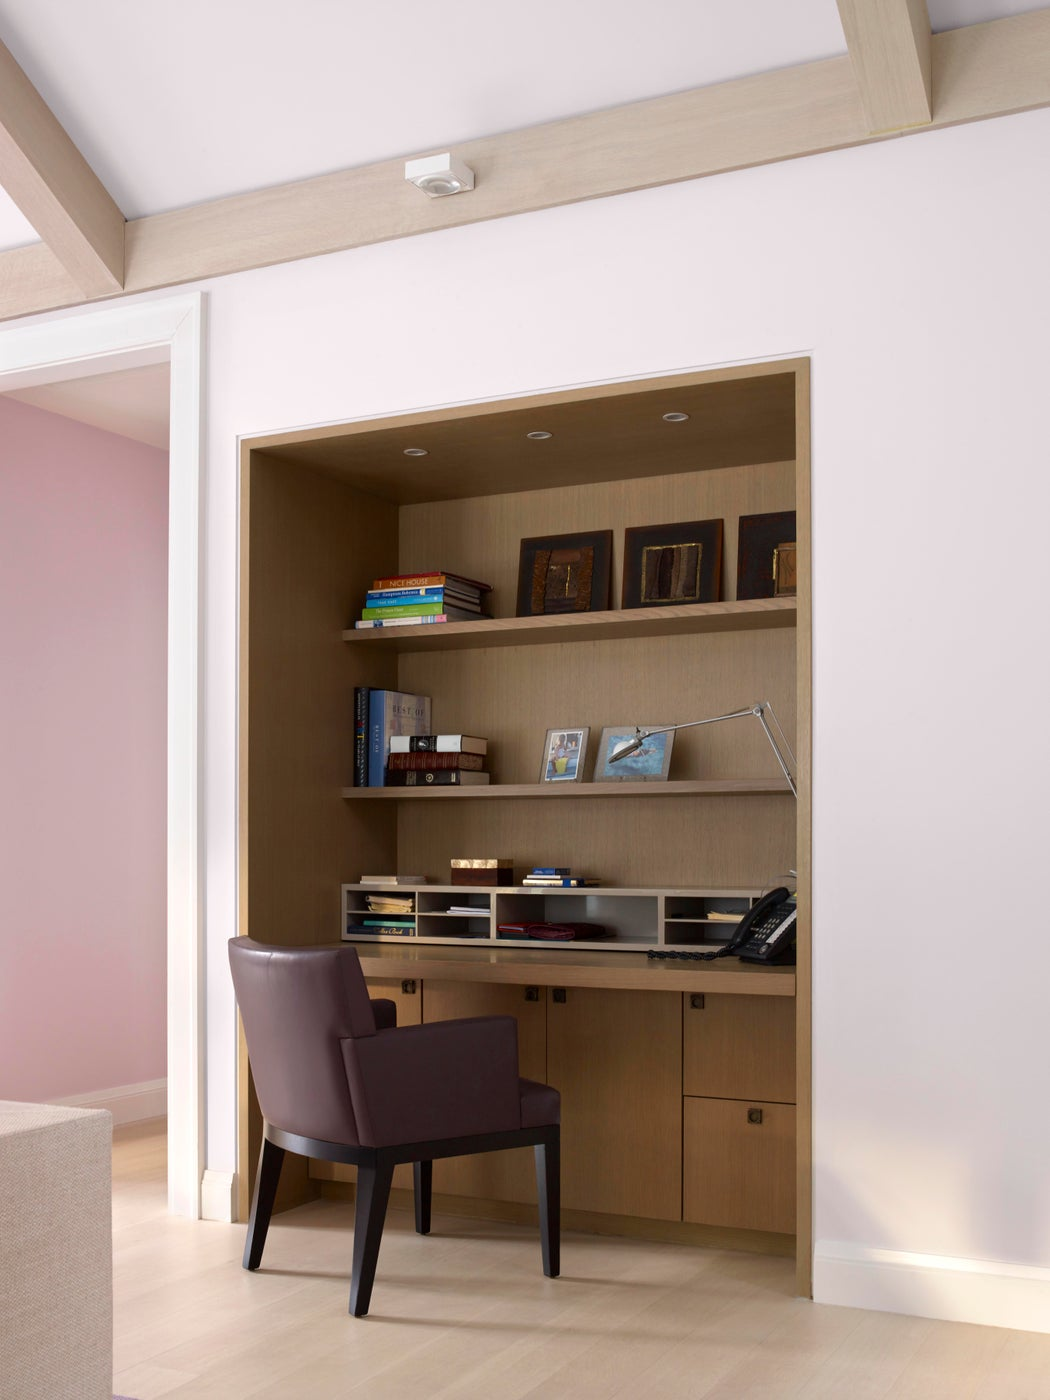 Home office with built-in desk, cabinetry and storage